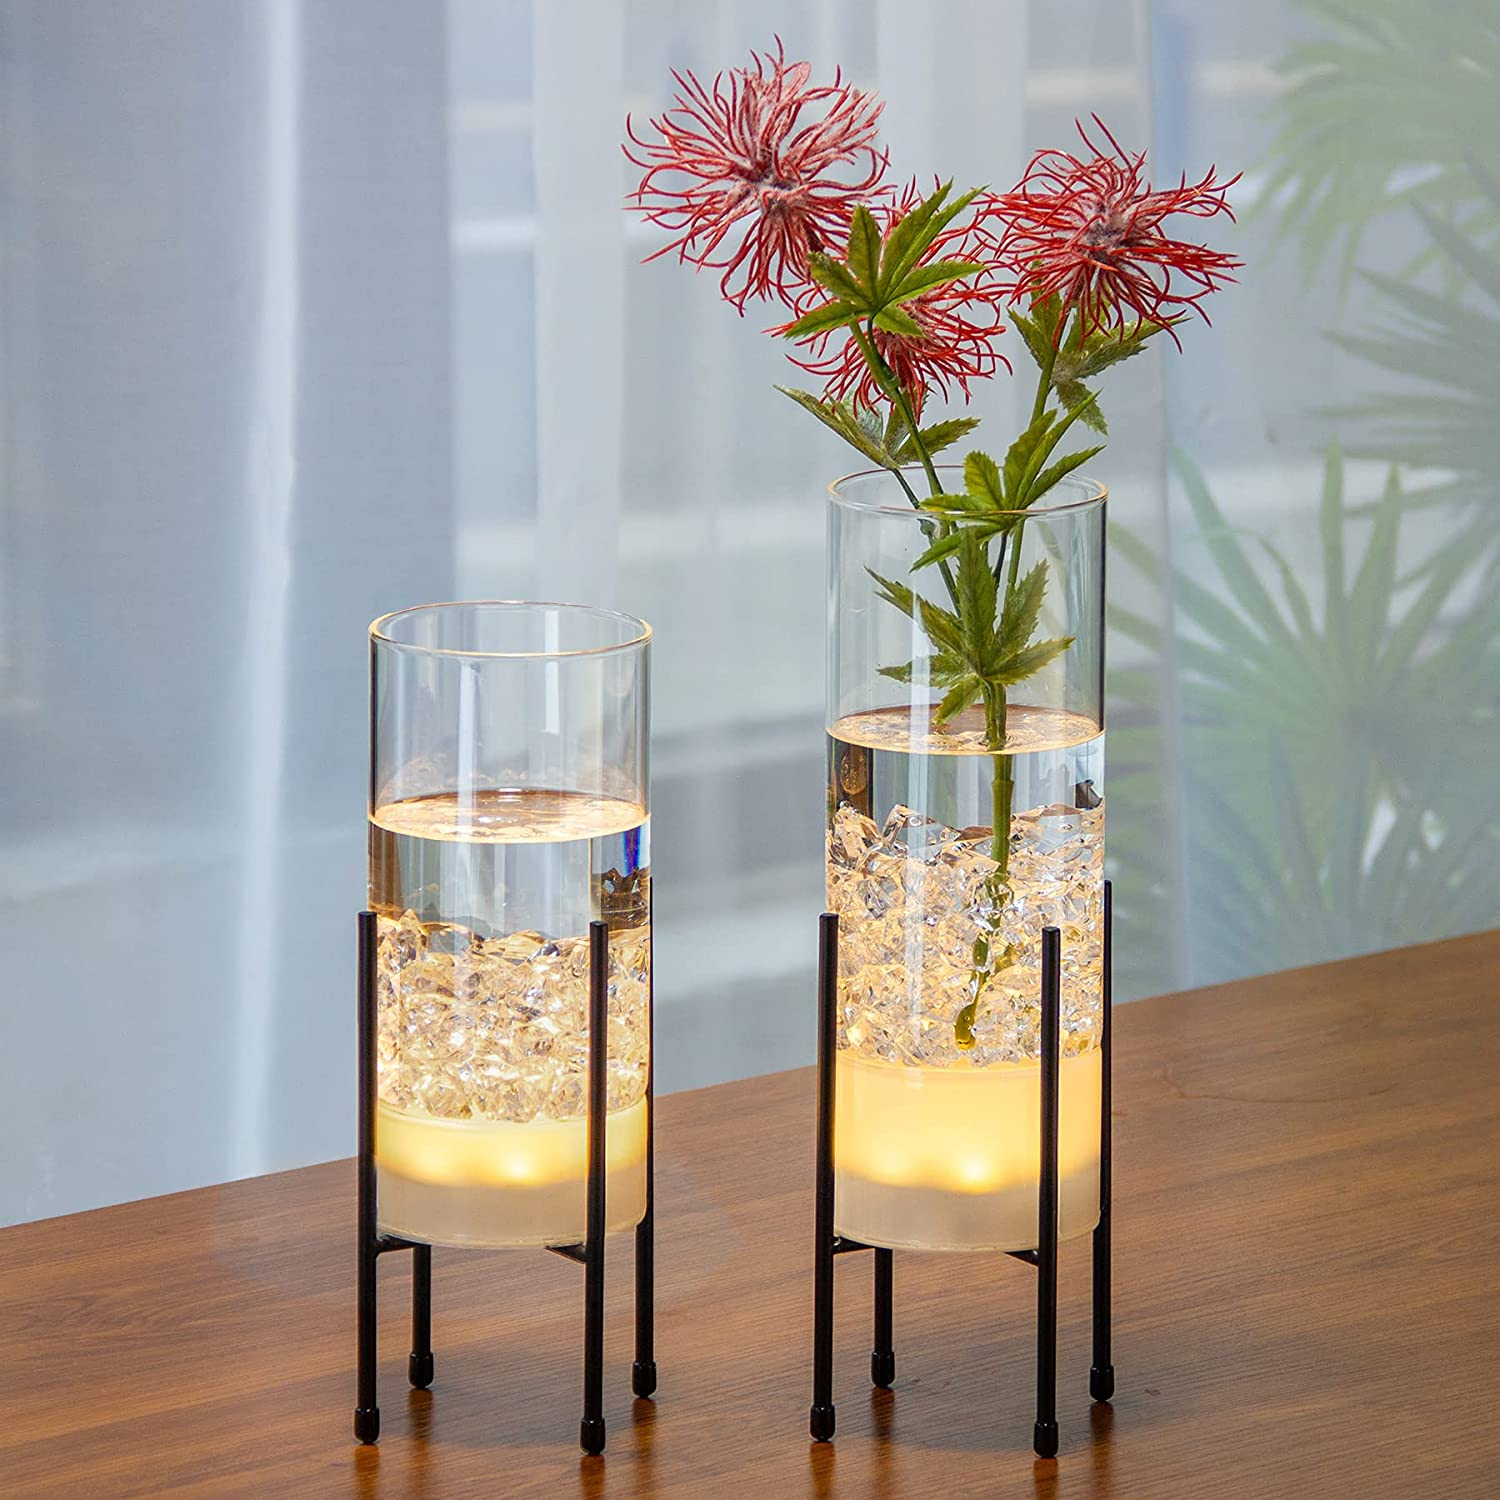 Glass Ranking integrated 1st place Vase for Decor Set V Plants Max 60% OFF Flowers Decorative